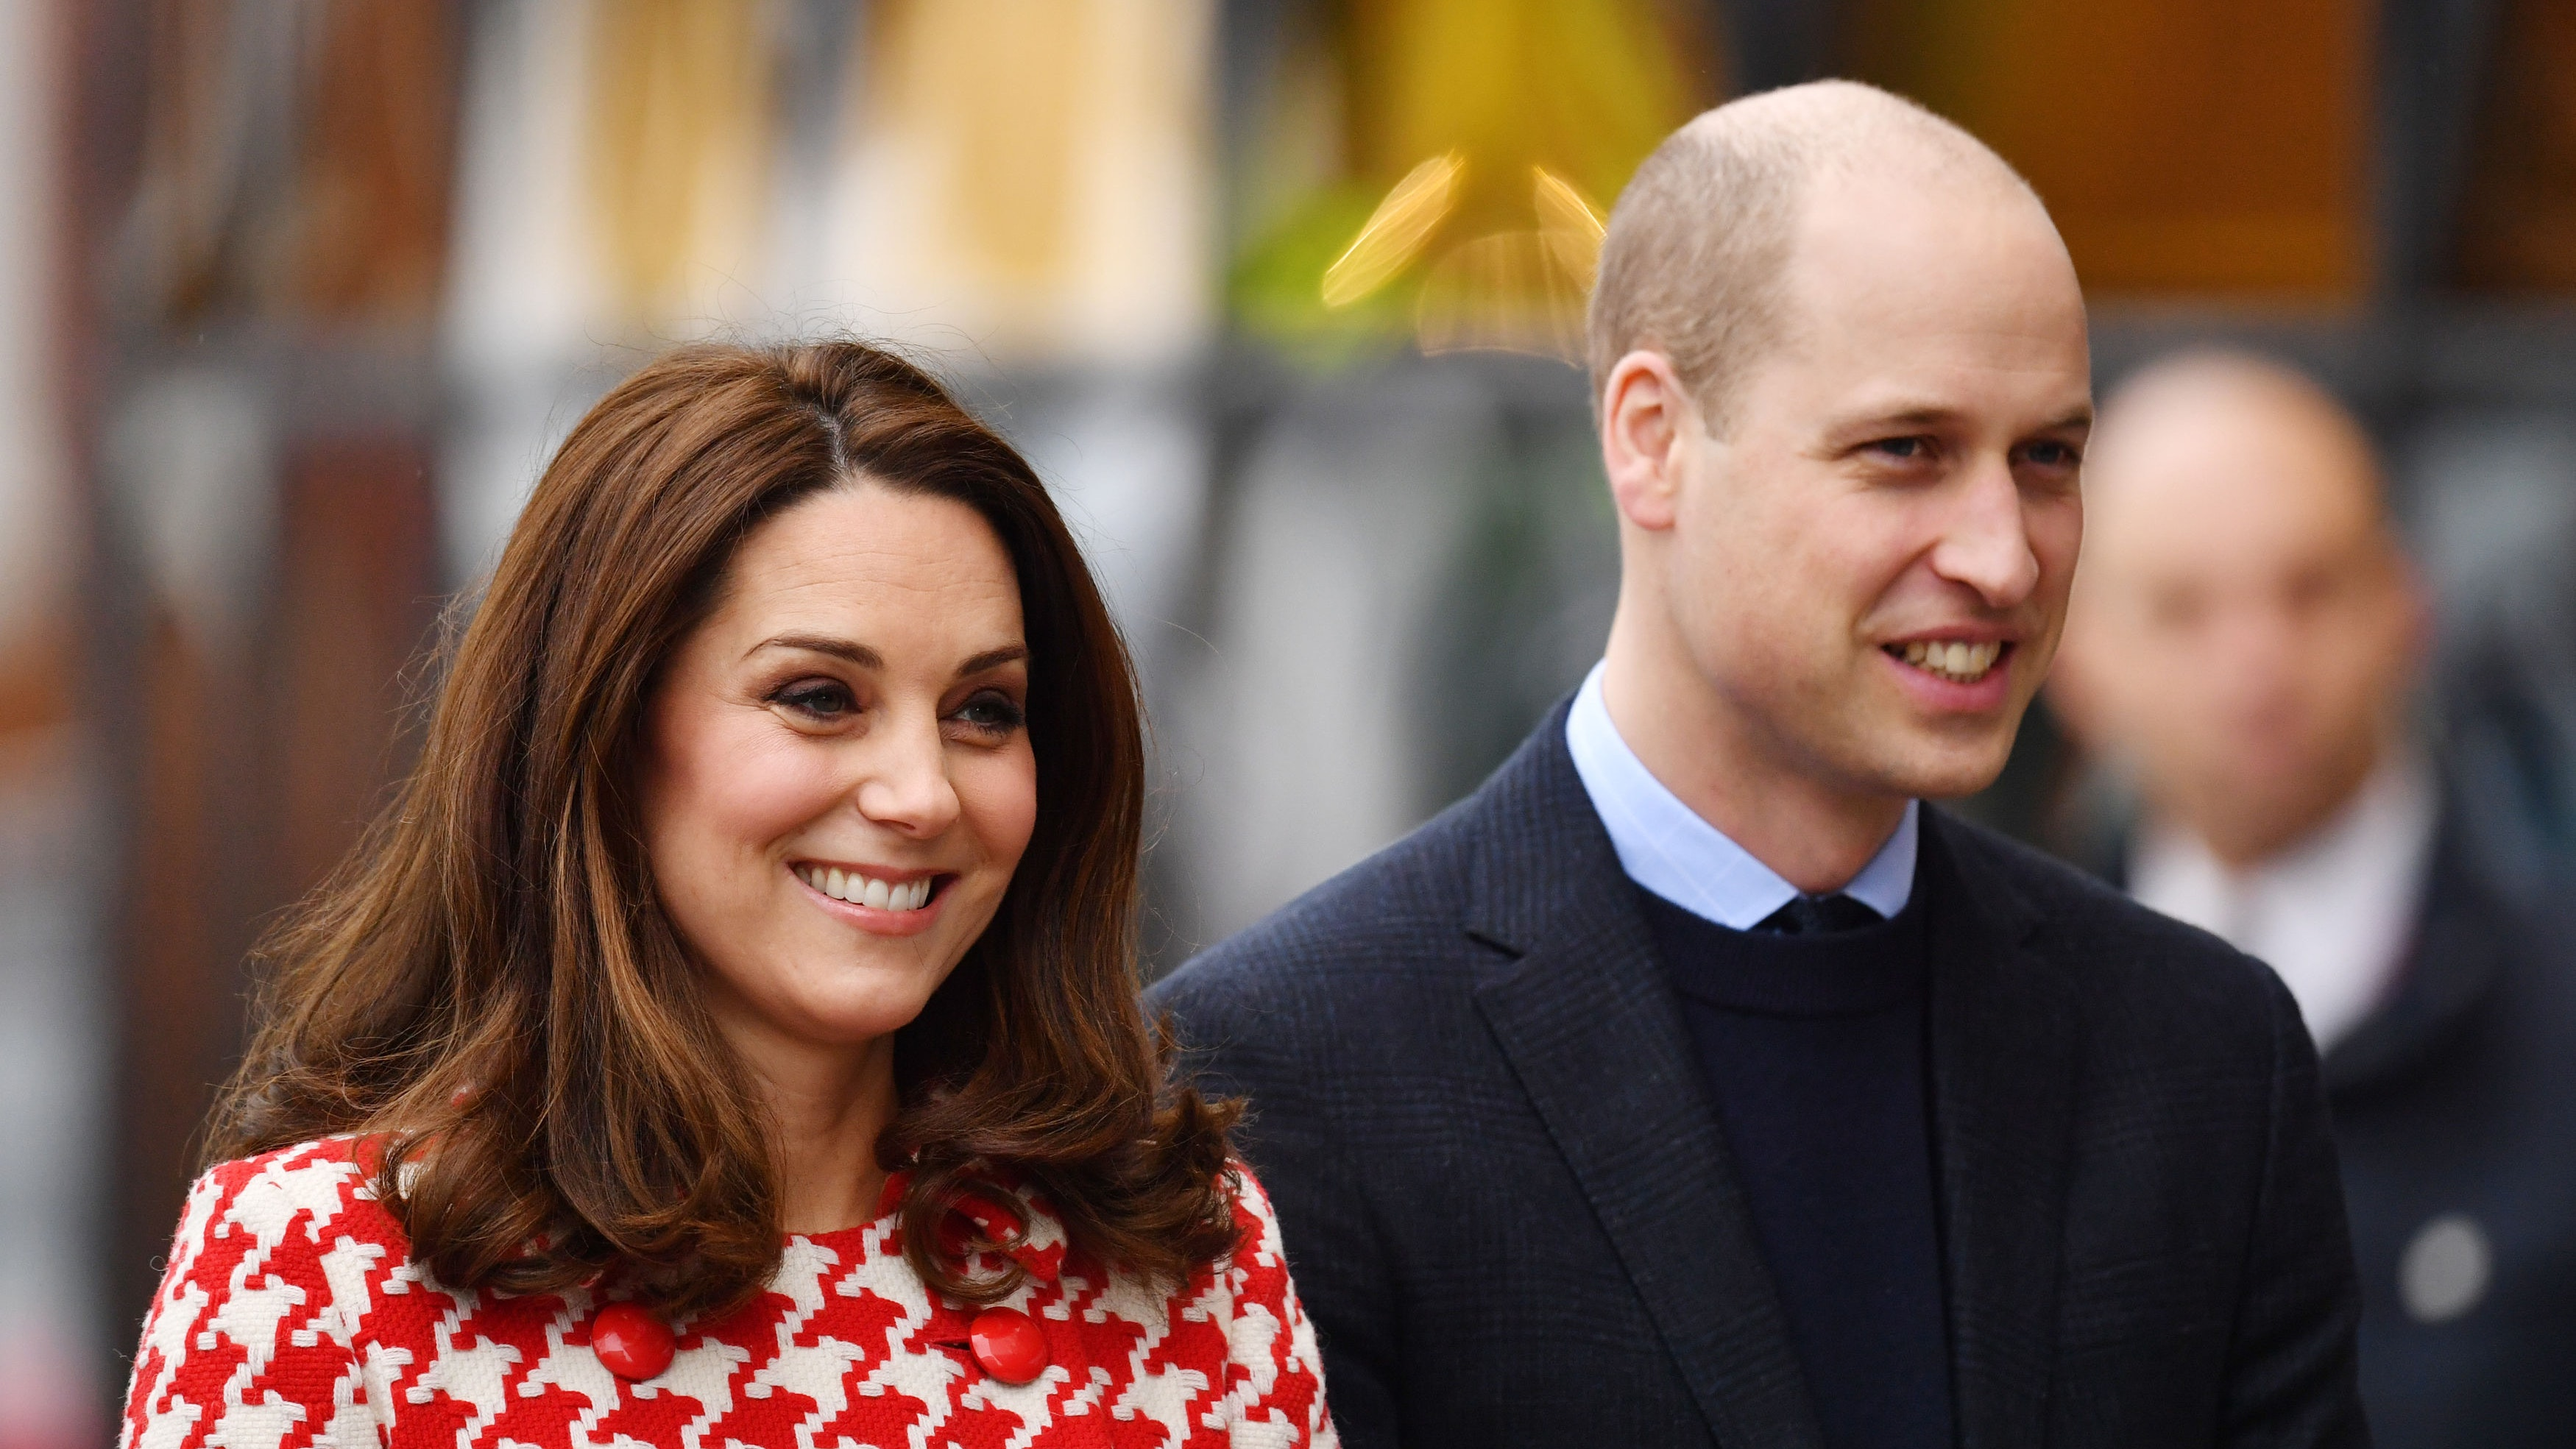 Pregnant Kate Middleton Challenges Prince William to a Hockey Shootout